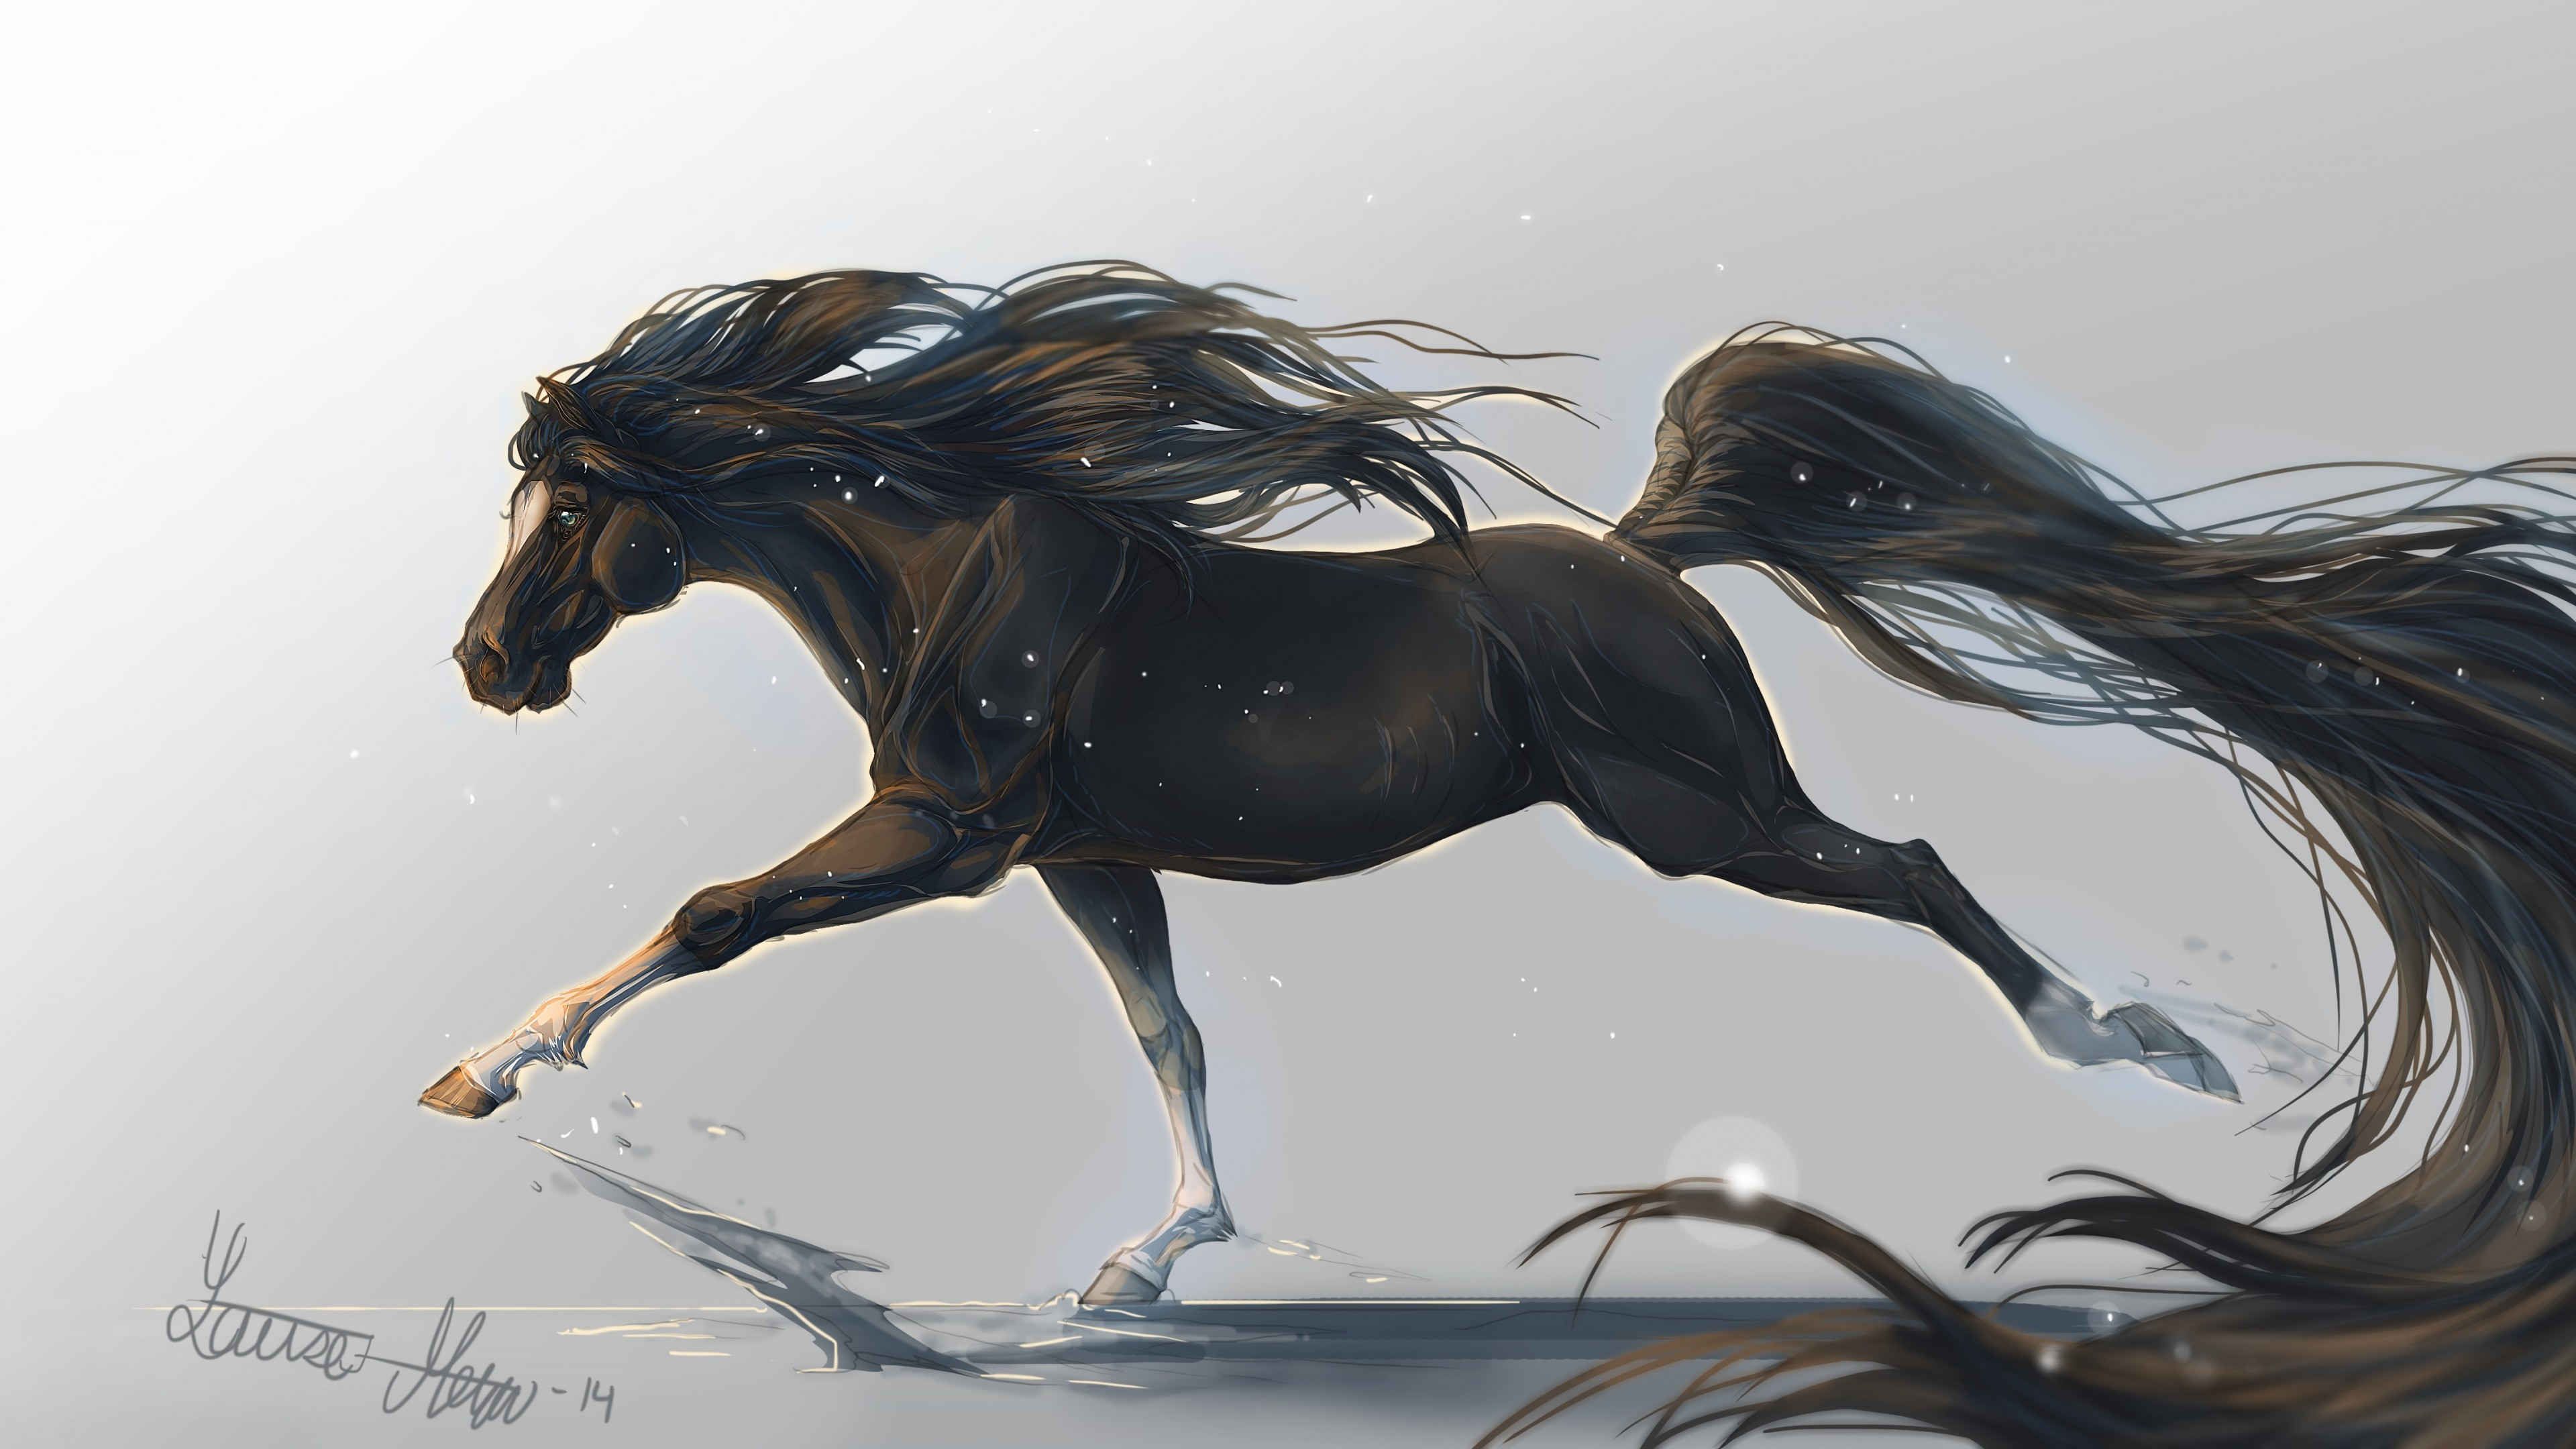 Wallpaper Horse Hooves 5k 4k Wallpaper Mane Galloping